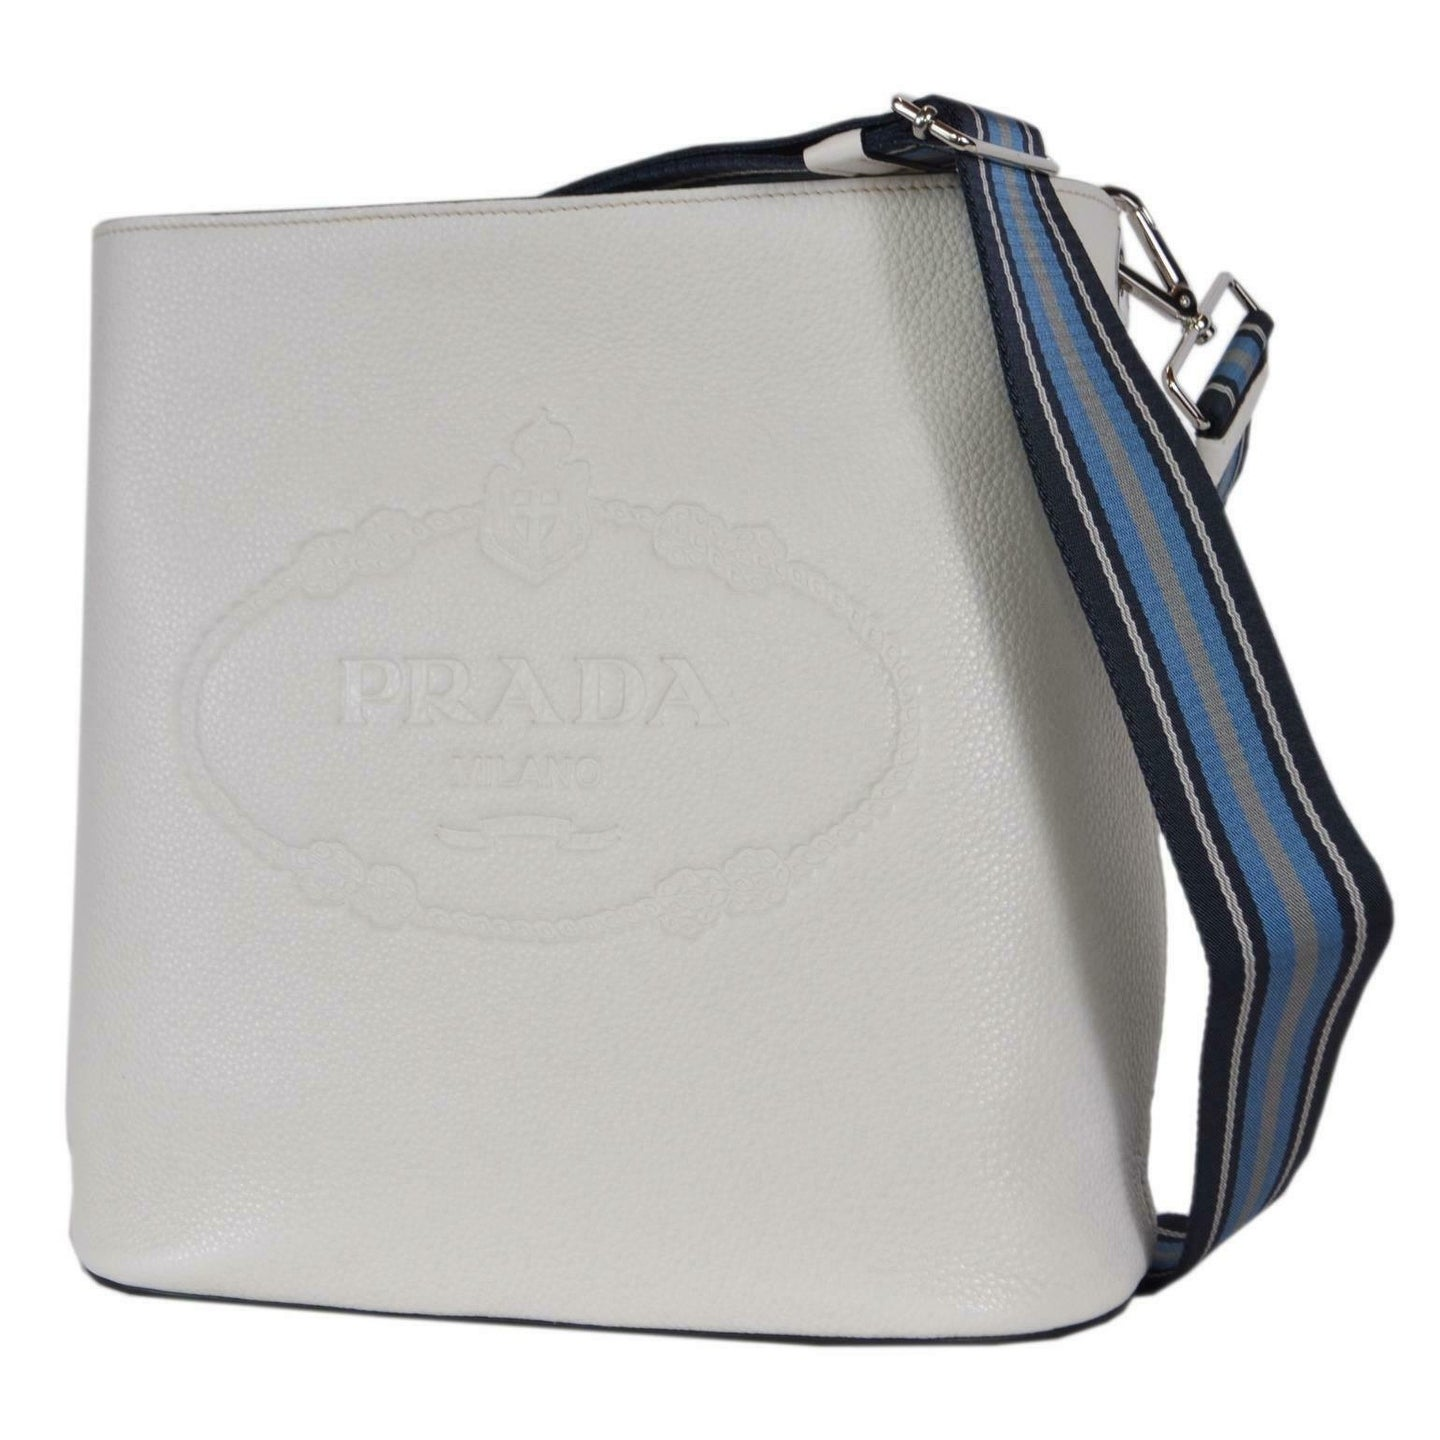 7e1763836bce Shop Prada 1BE023 Vitello Secchiello White Leather Embossed Logo Crossbody  Purse - Talco White - Free Shipping Today - Overstock - 27974280